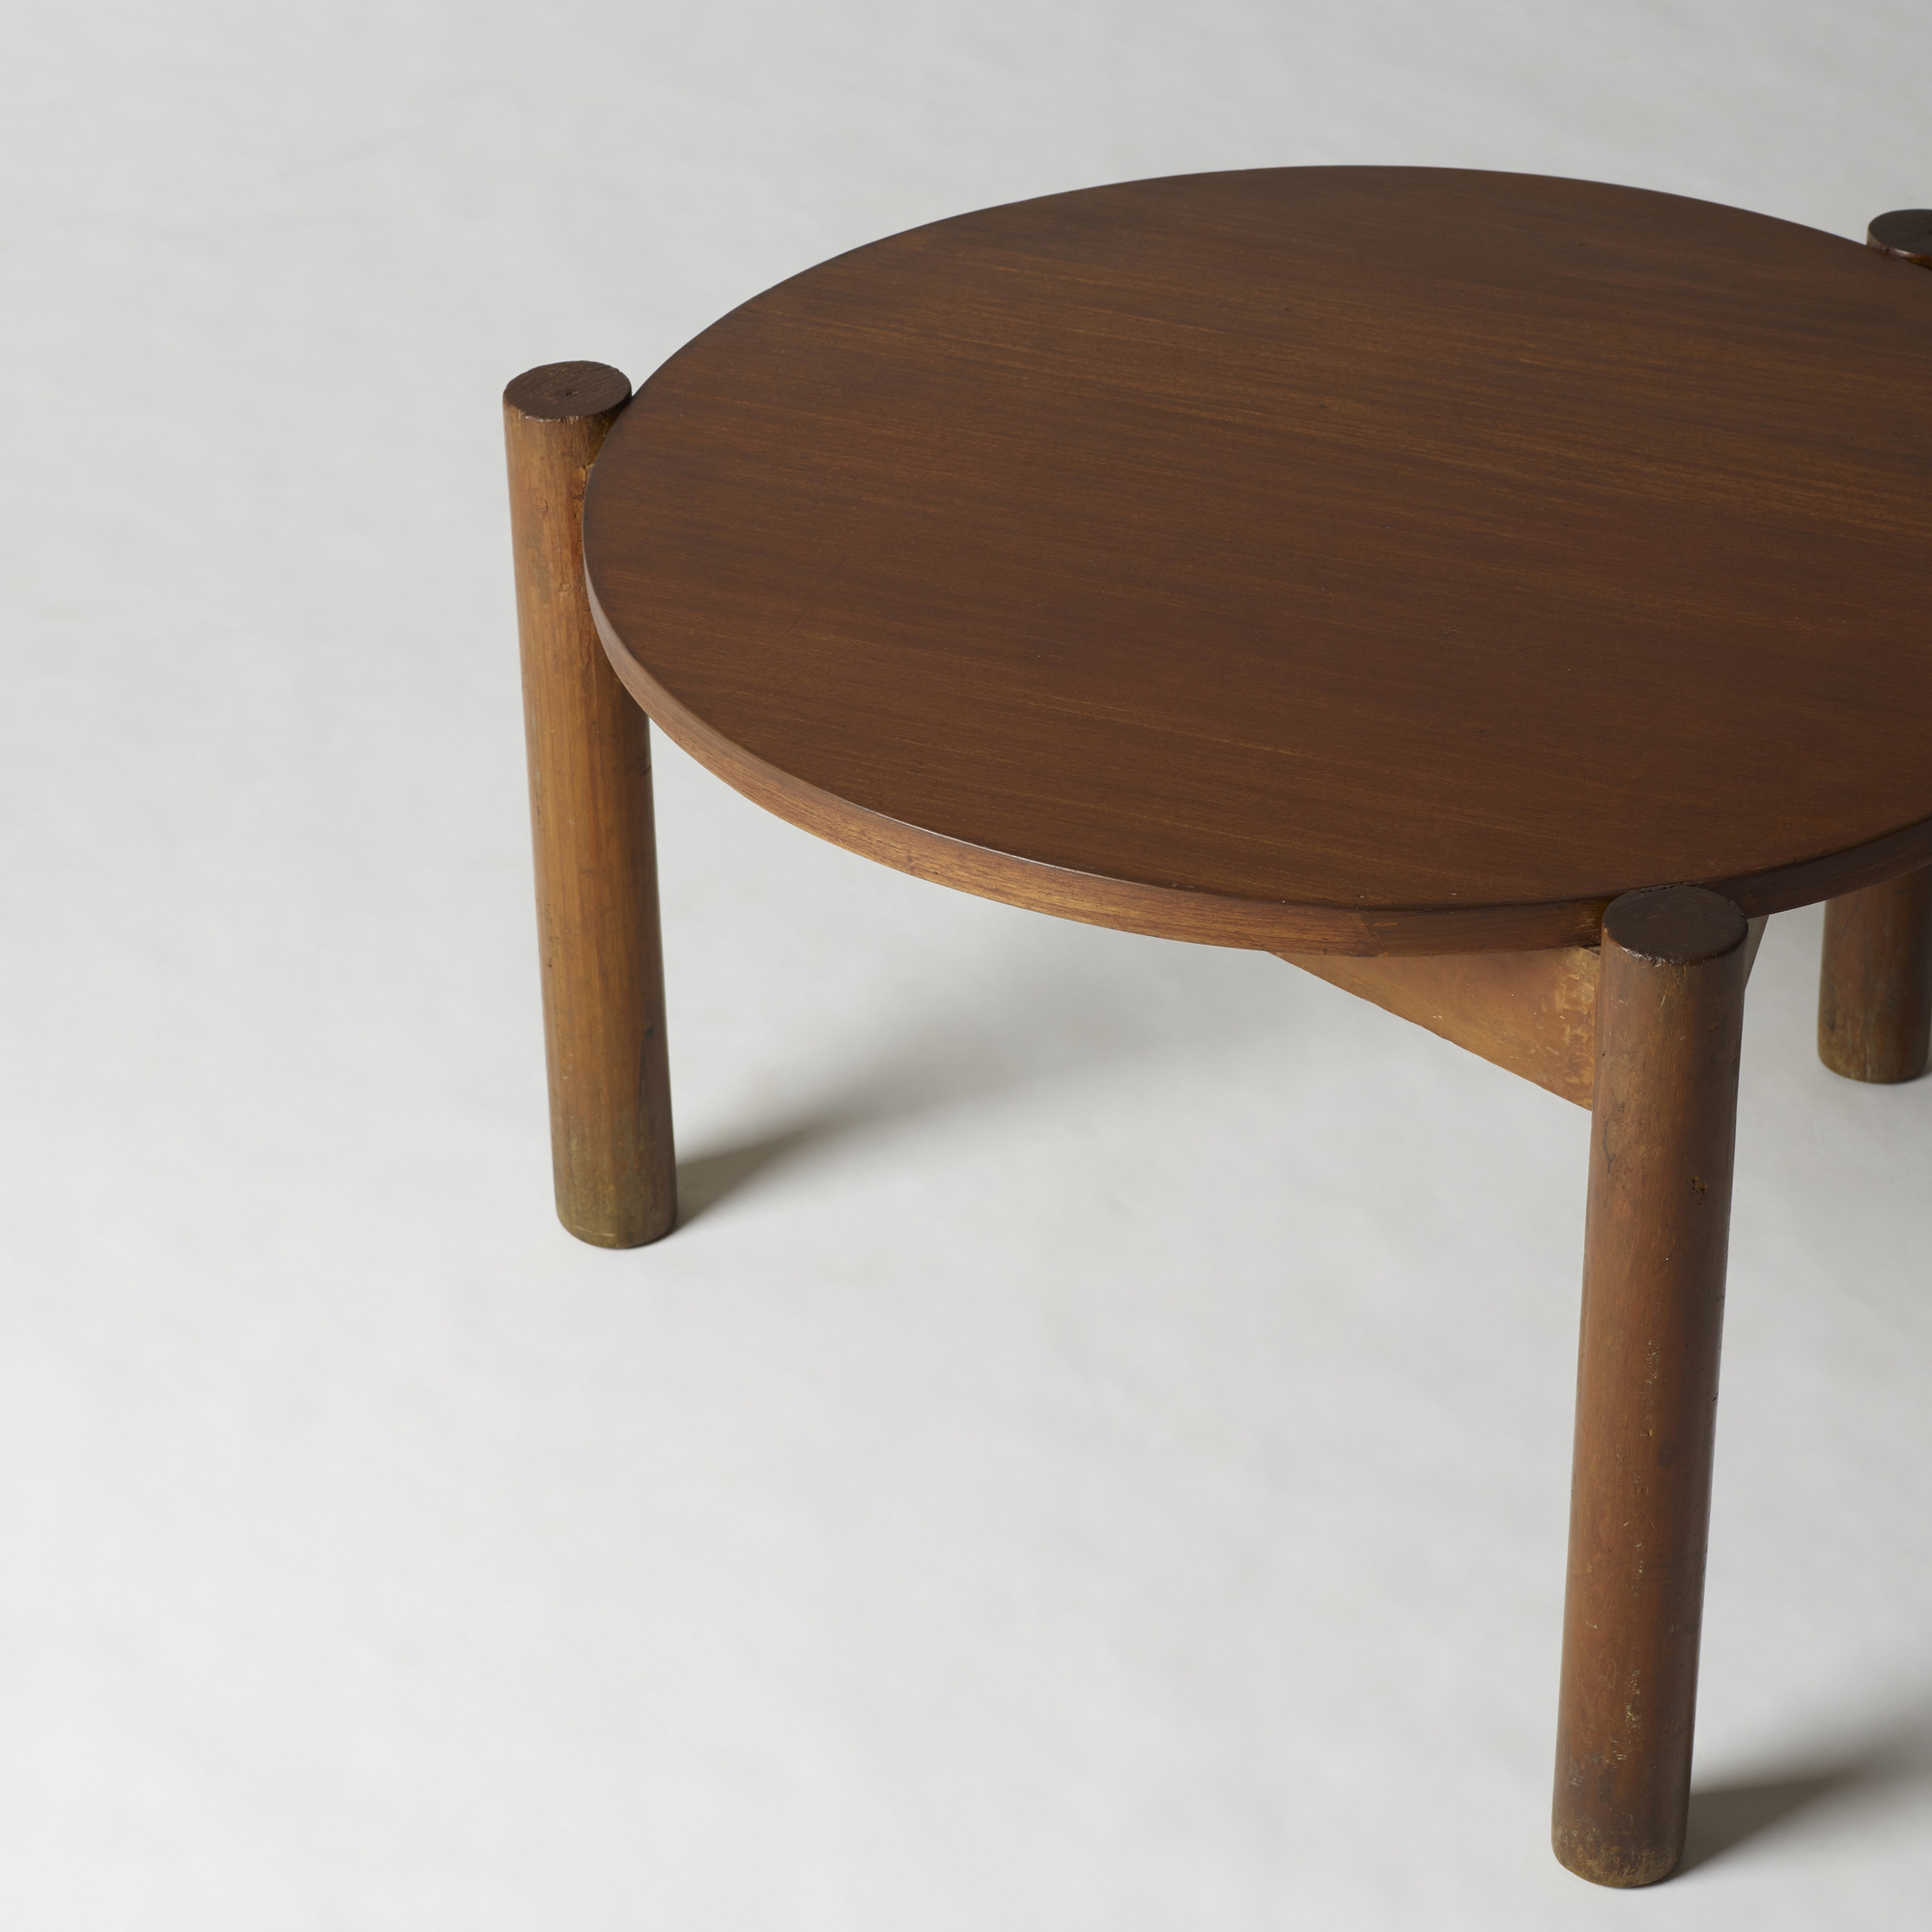 107 PIERRE JEANNERET coffee table from the PGI Hospital